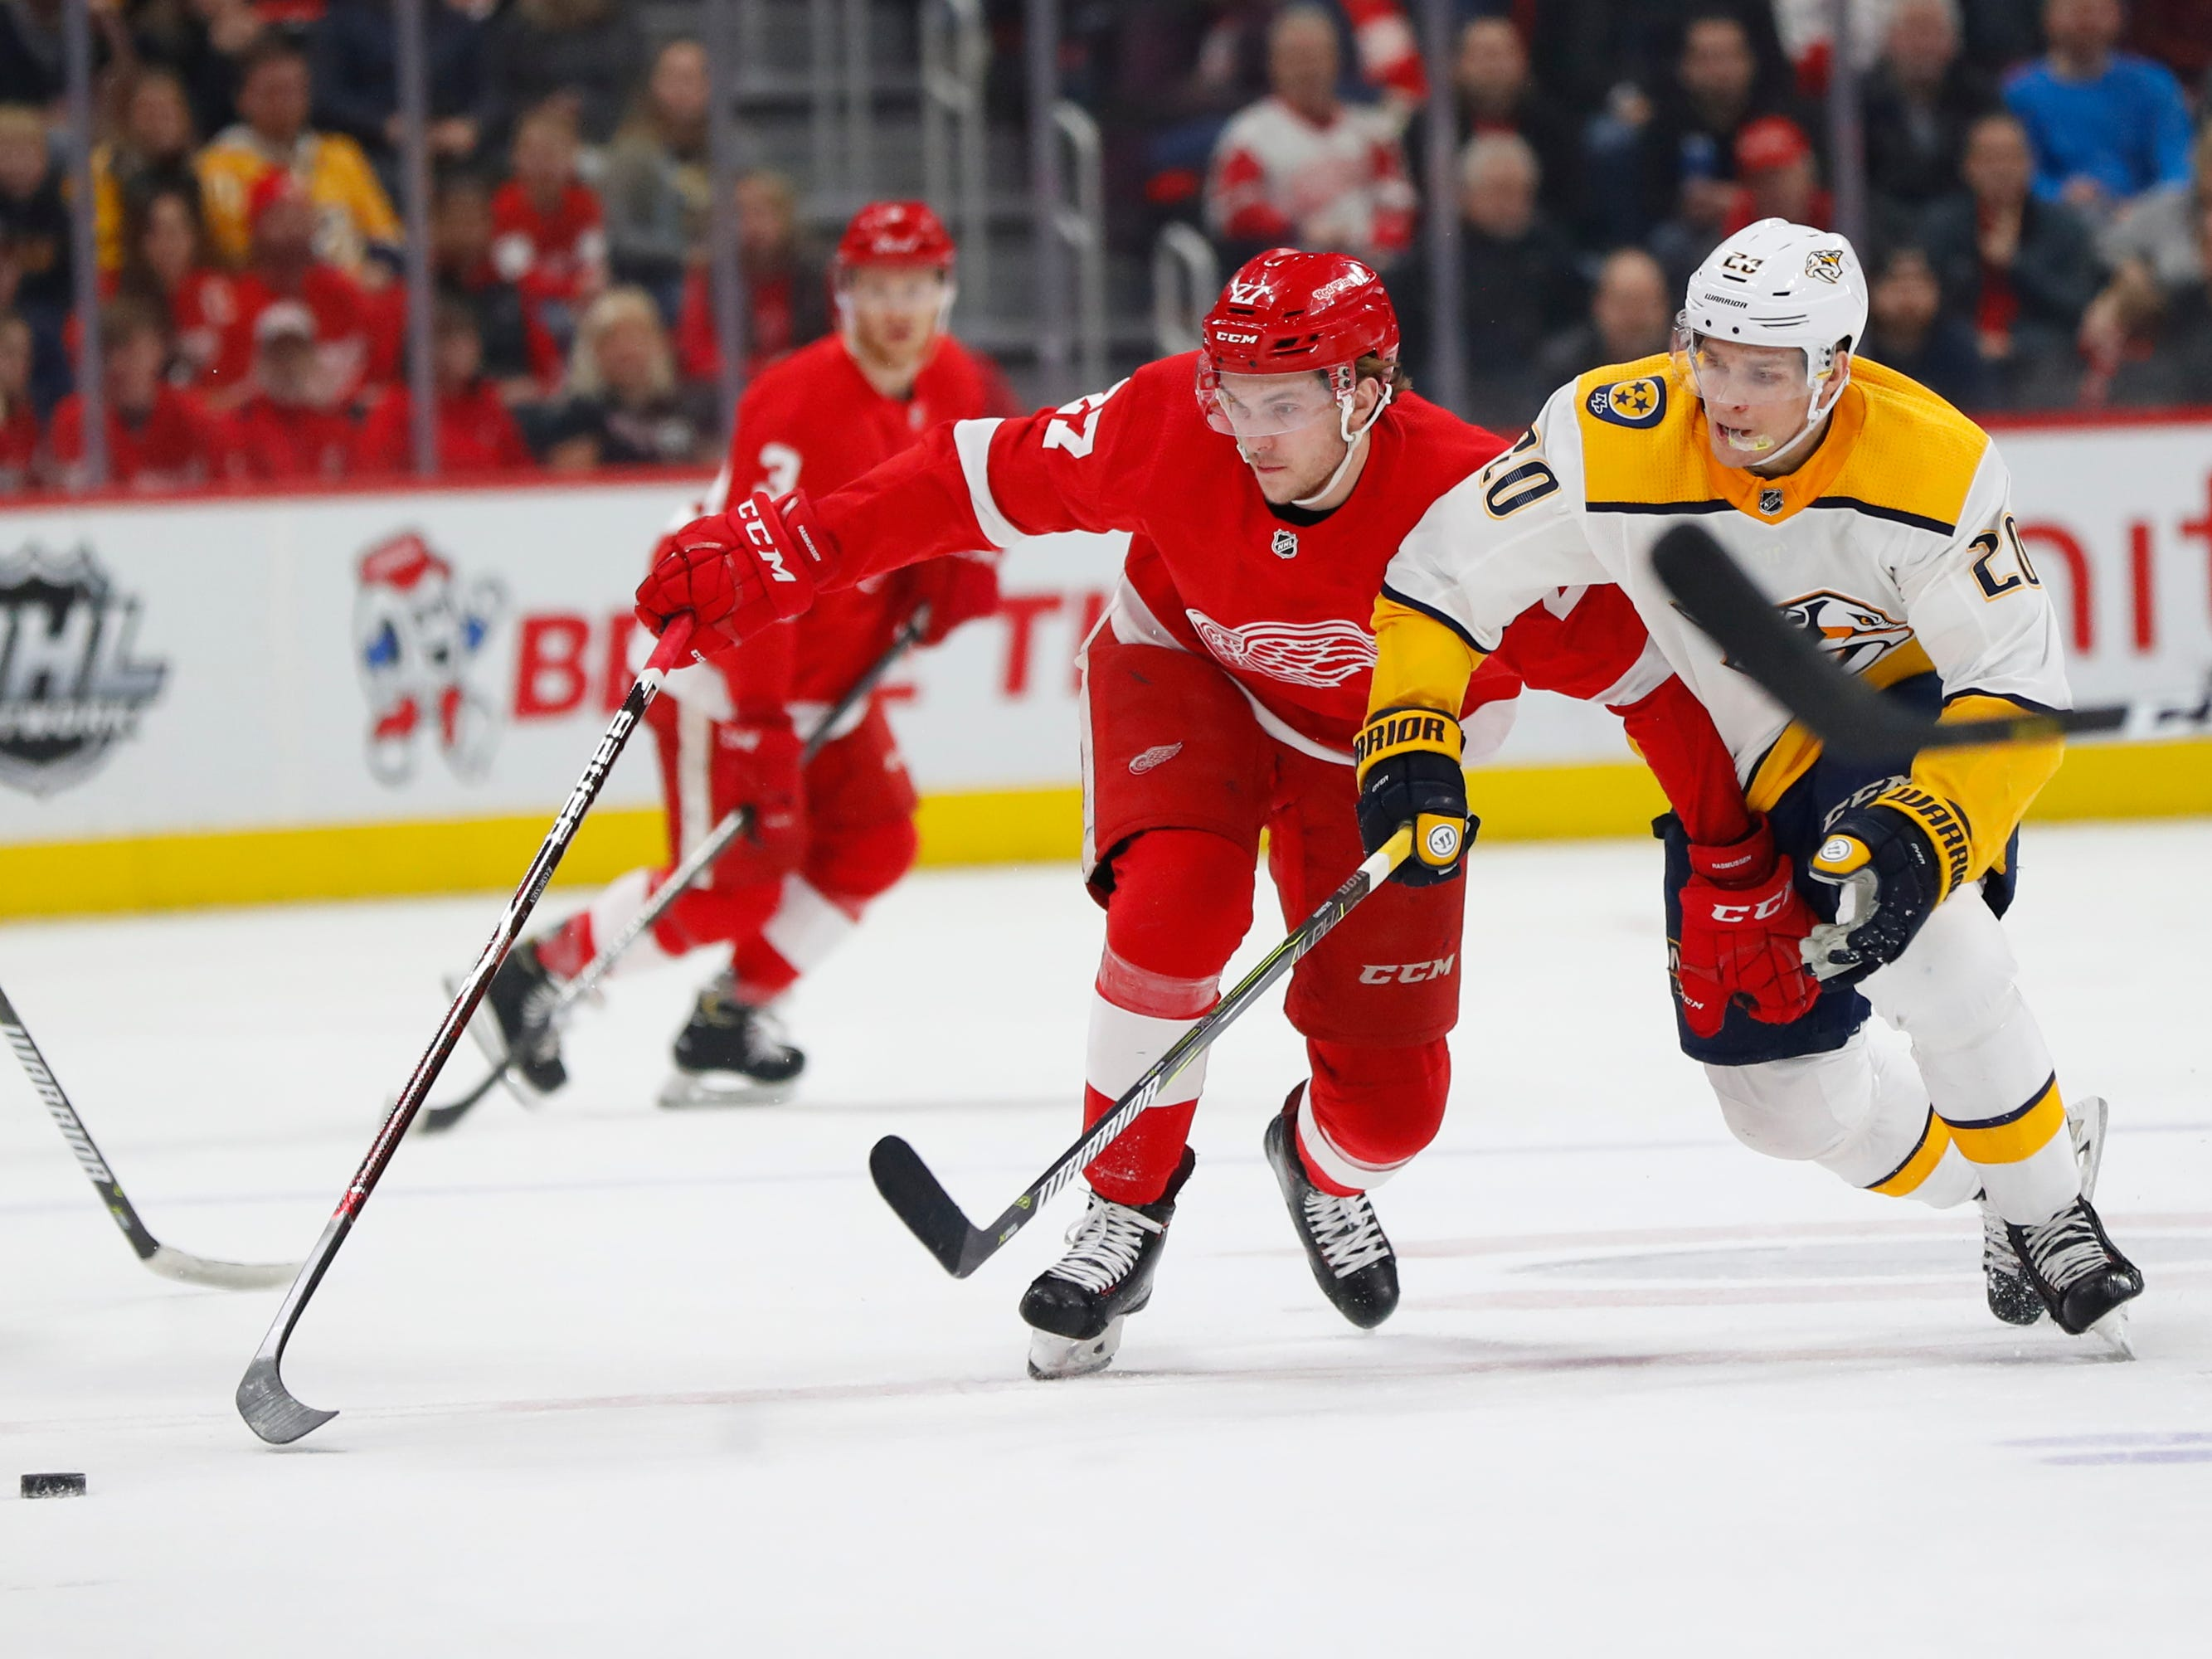 Detroit Red Wings center Michael Rasmussen (27) and Nashville Predators right wing Miikka Salomaki (20) battle for the puck in the first period of an NHL hockey game Friday, Jan. 4, 2019, in Detroit. (AP Photo/Paul Sancya)